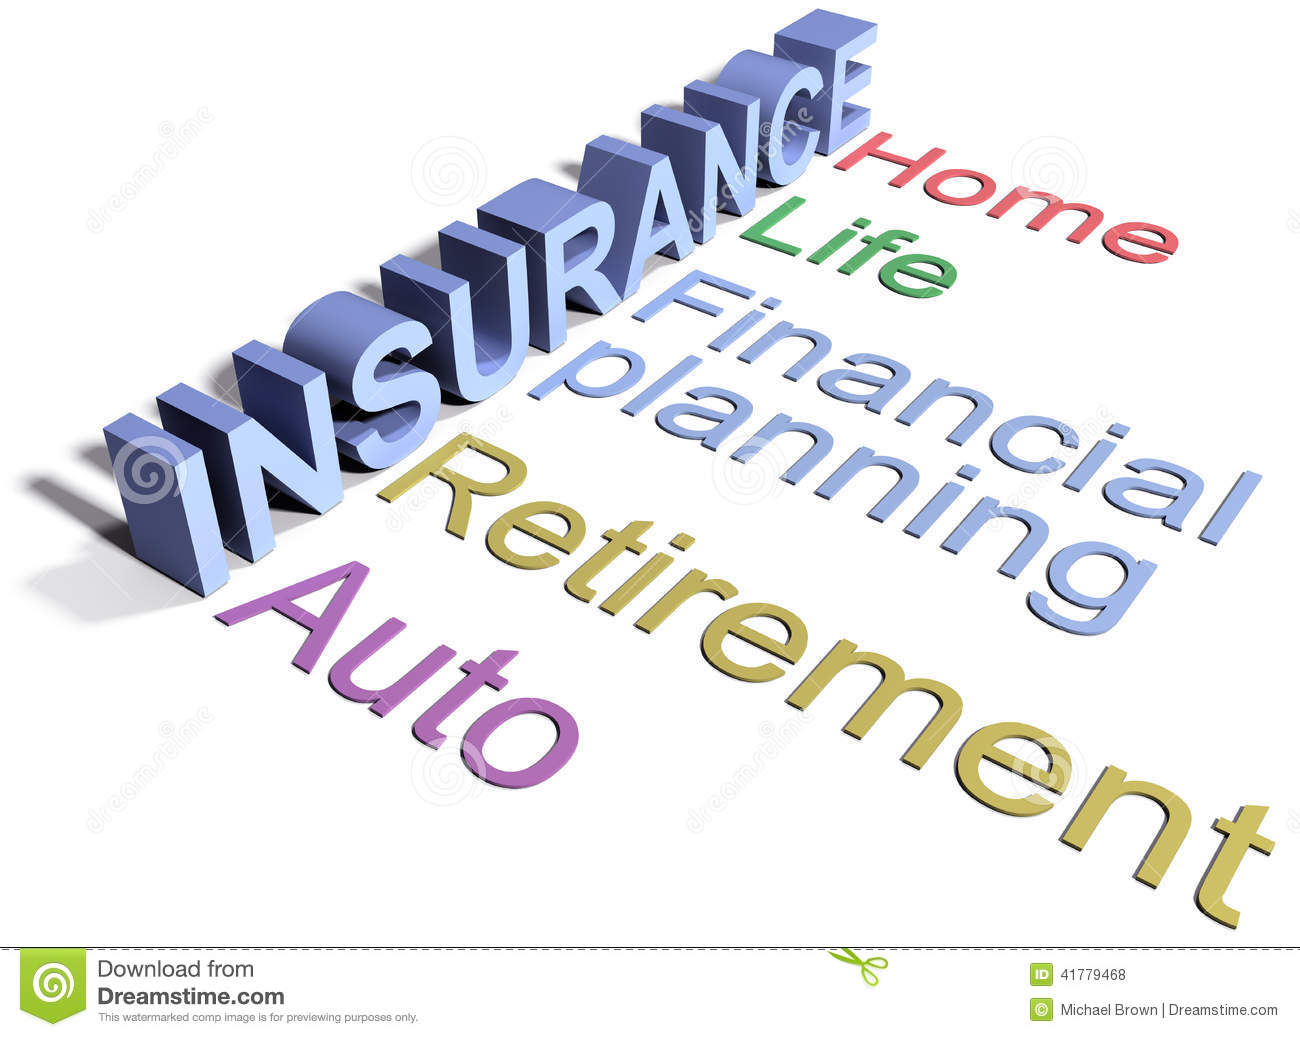 insurance-services-home-life-auto-comprehensive-financial-planning-41779468.jpg